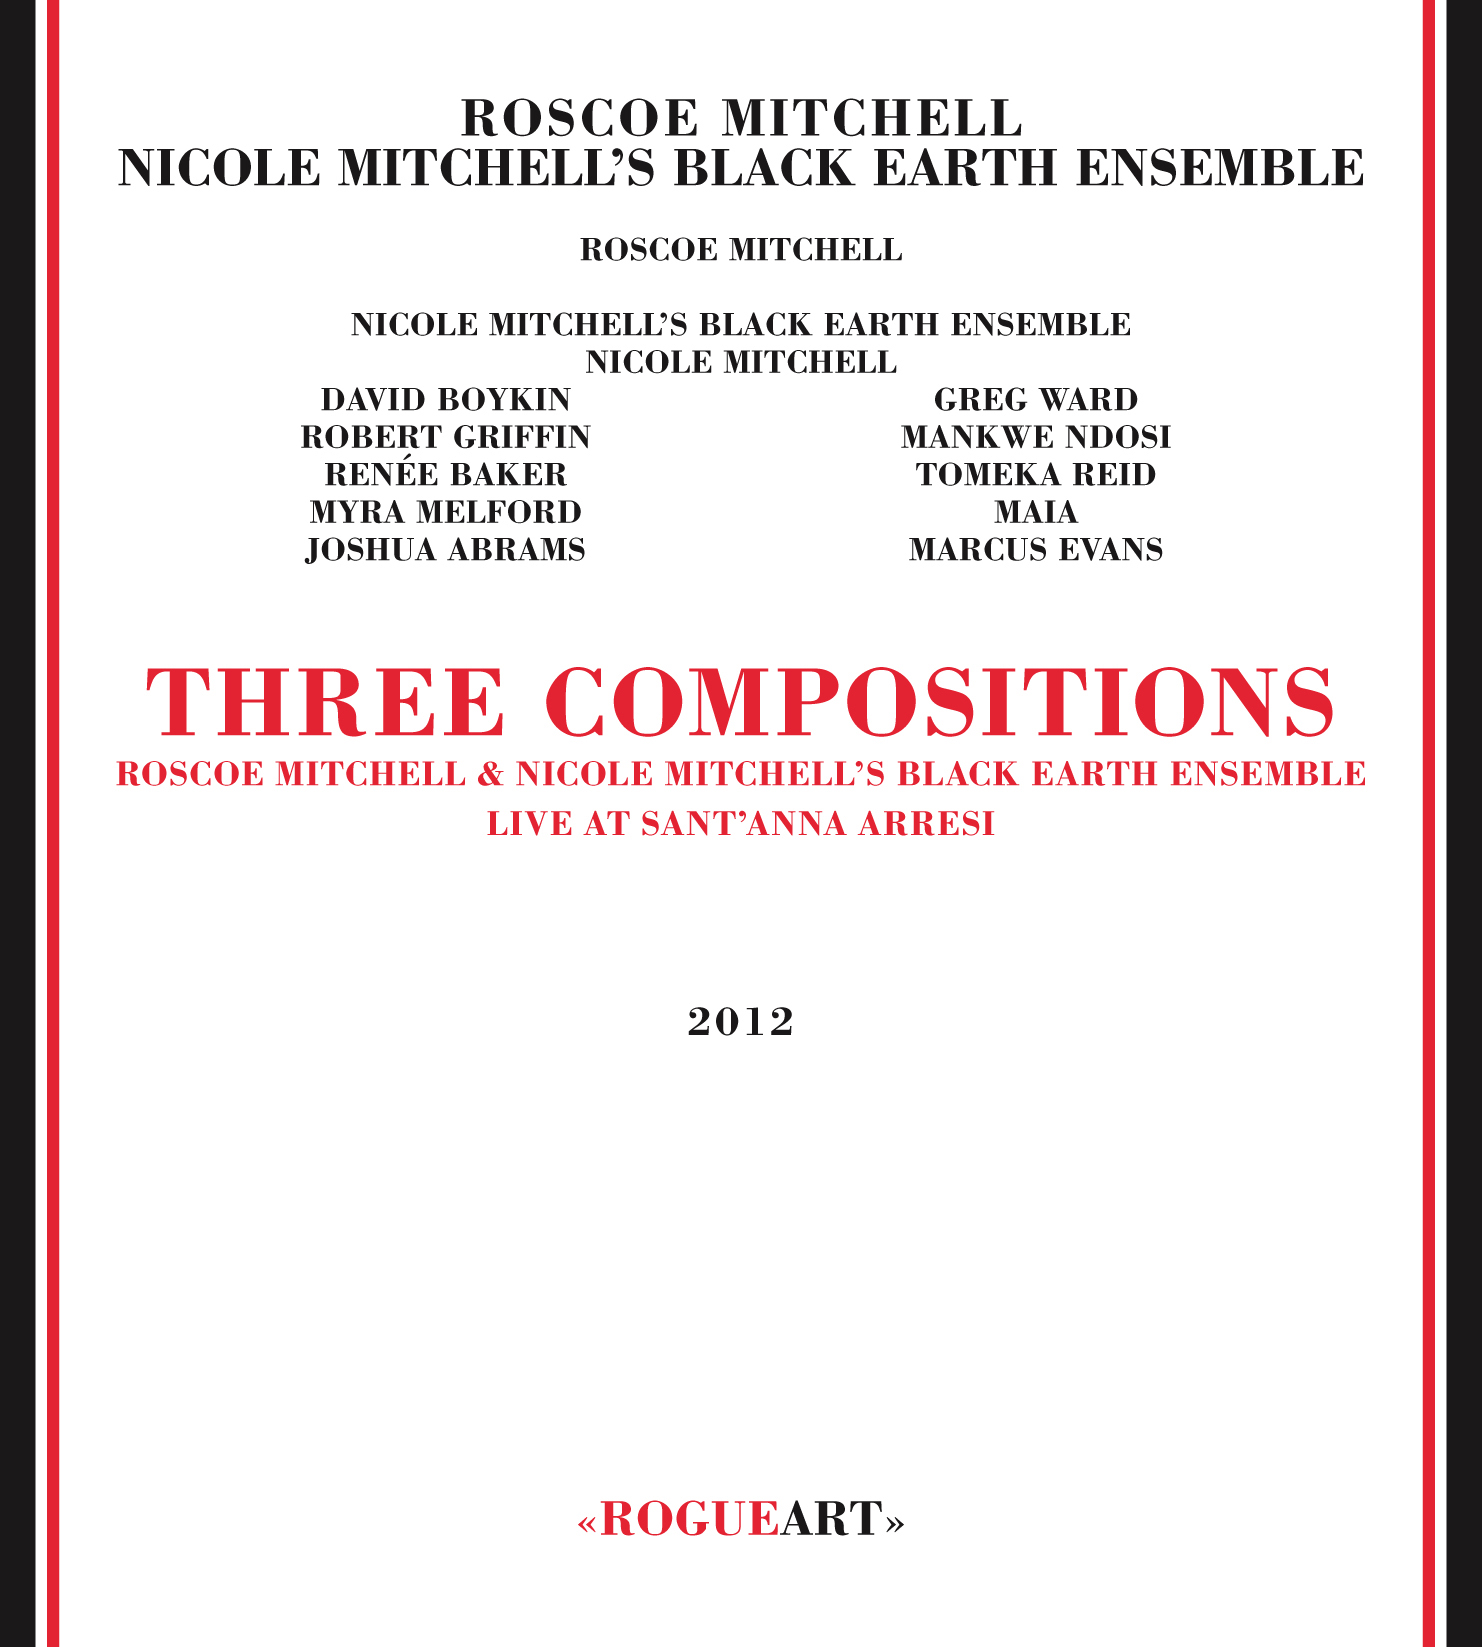 Front cover of the album THREE COMPOSITIONS